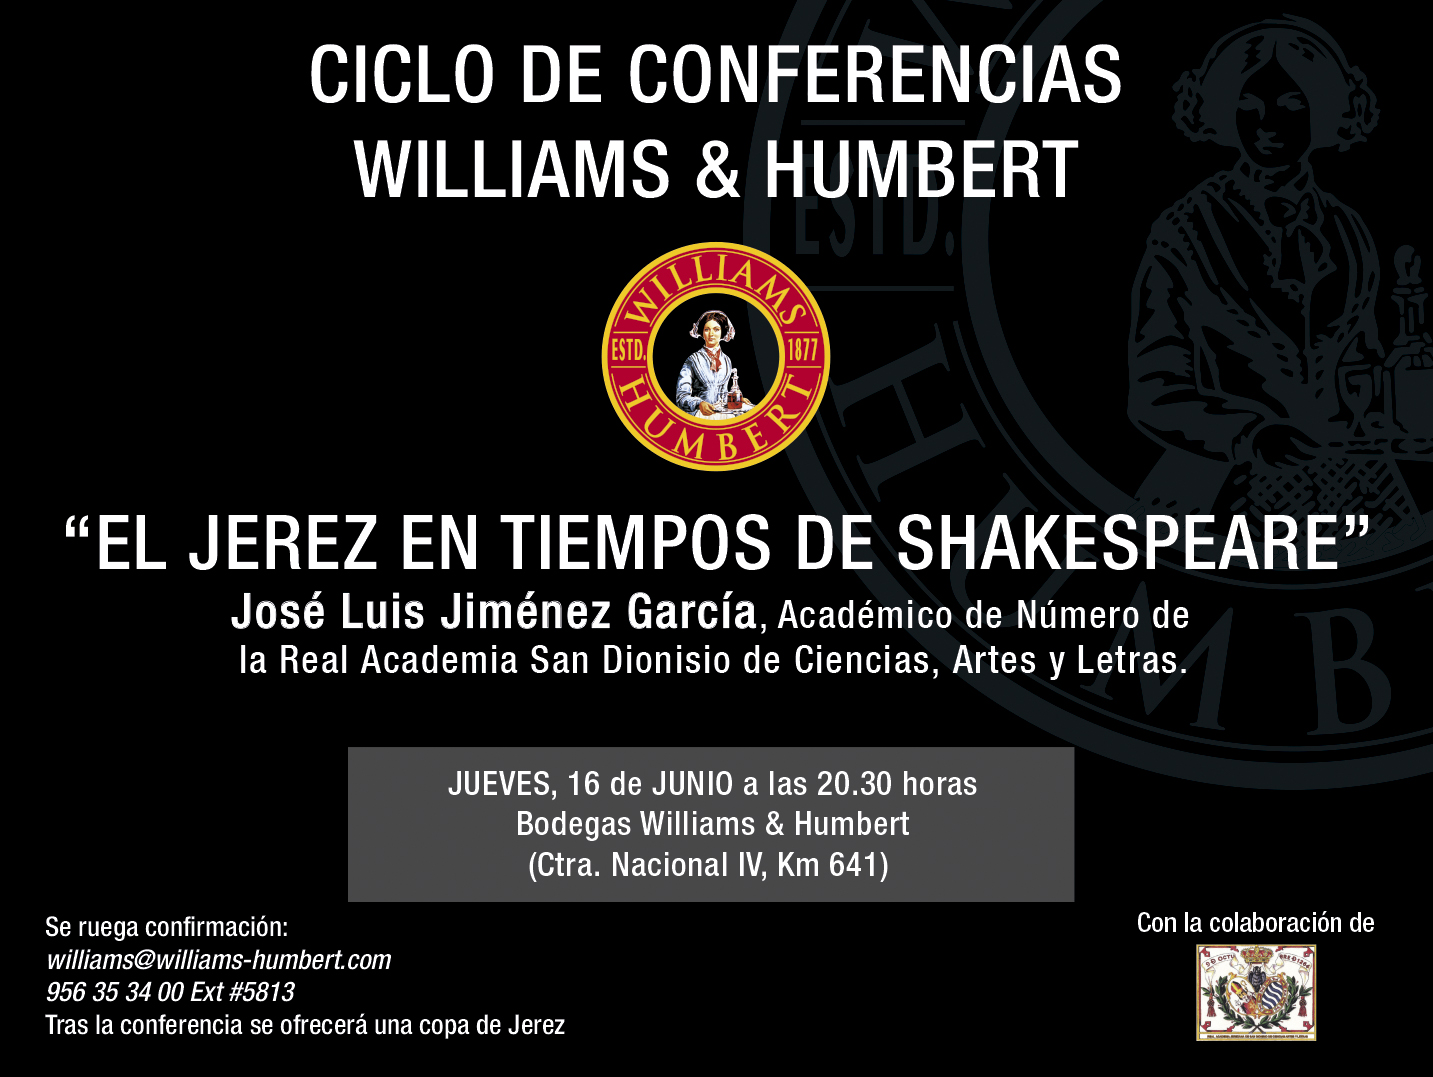 Shakespeare Lecture at Bodegas Williams & Humbert